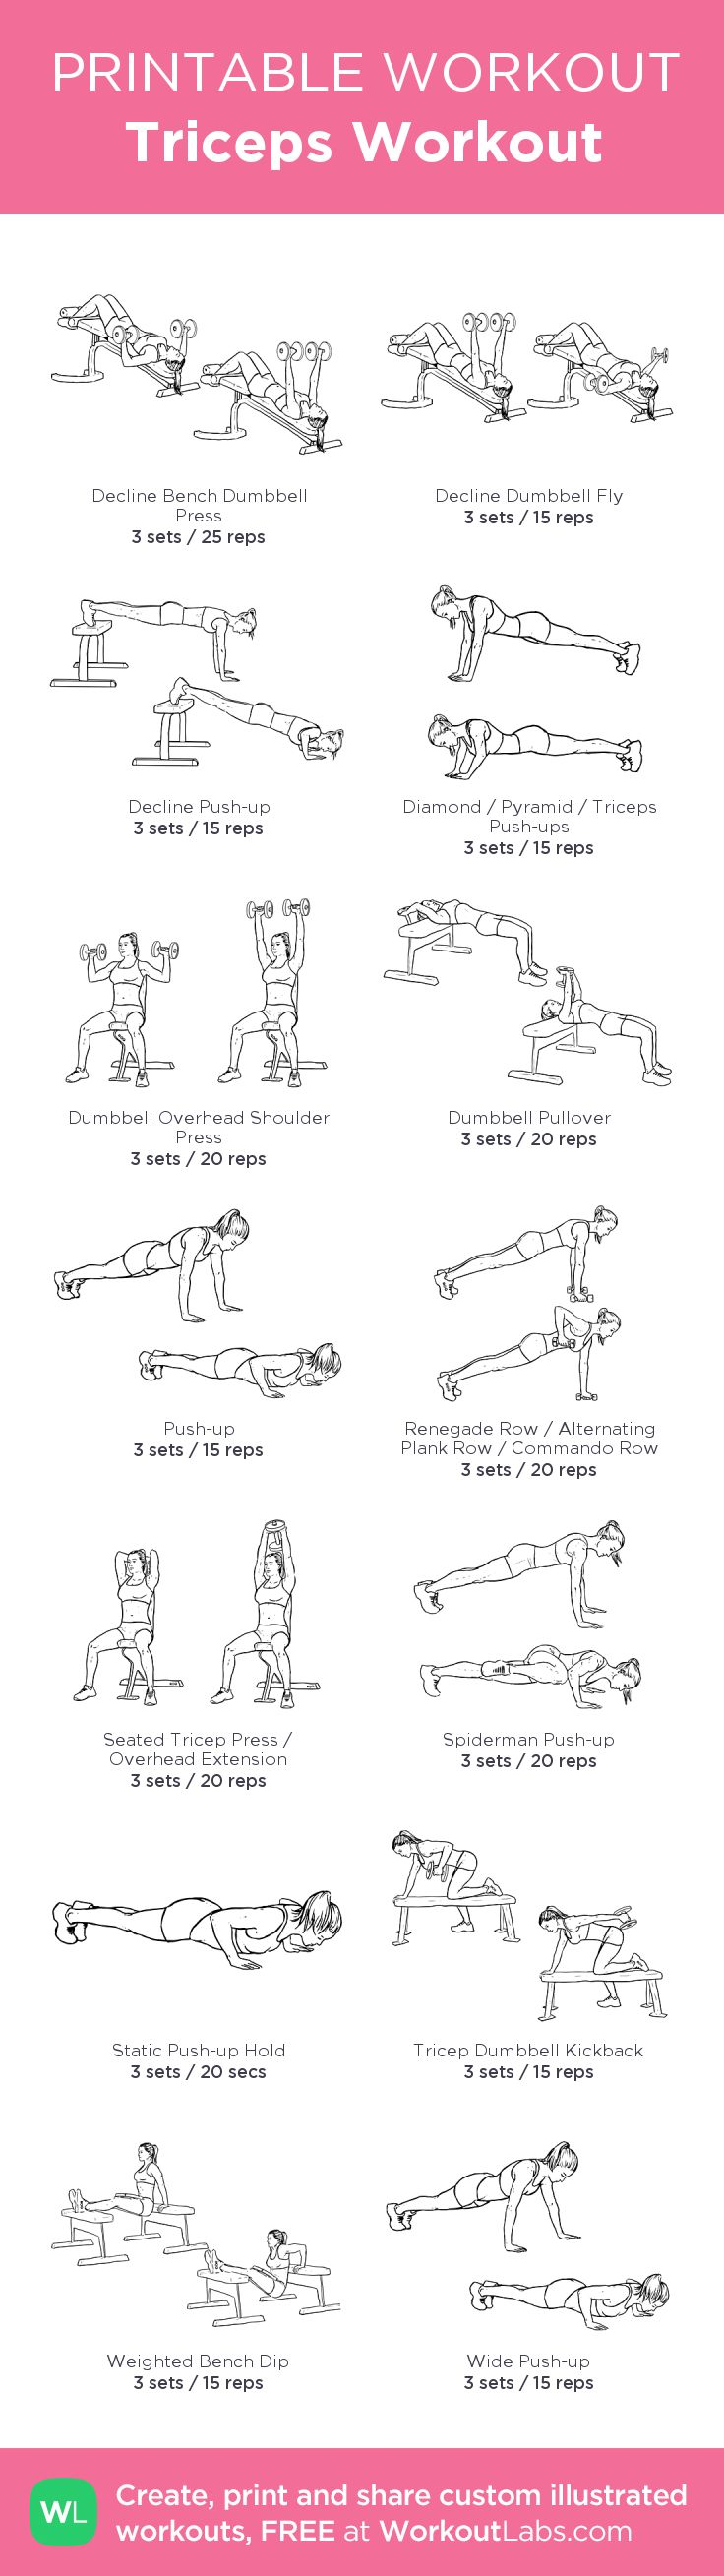 Triceps Workout:my visual workout created at WorkoutLabs.com • Click through to customize and download as a FREE PDF! #customworkout